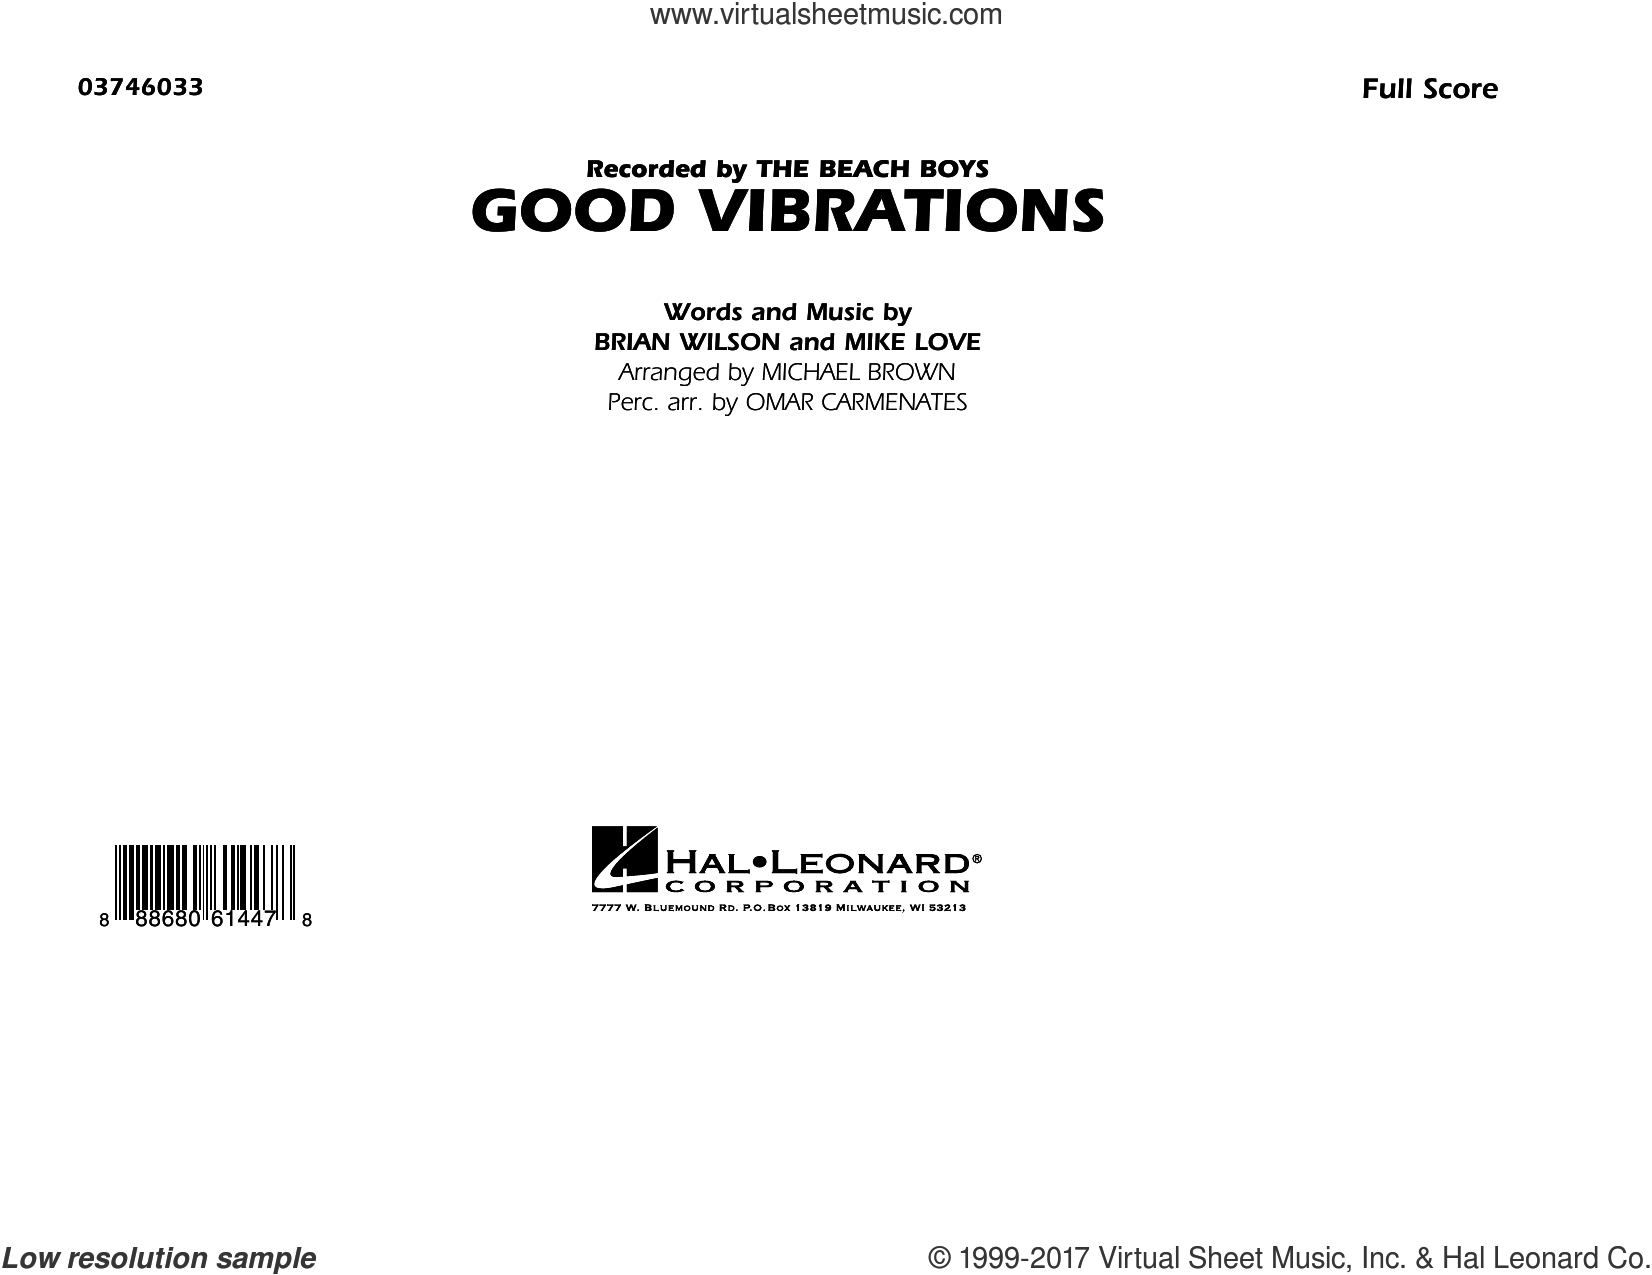 Good Vibrations (COMPLETE) sheet music for marching band by The Beach Boys, Brian Wilson, Michael Brown, Mike Love and Omar Carmenates, intermediate skill level